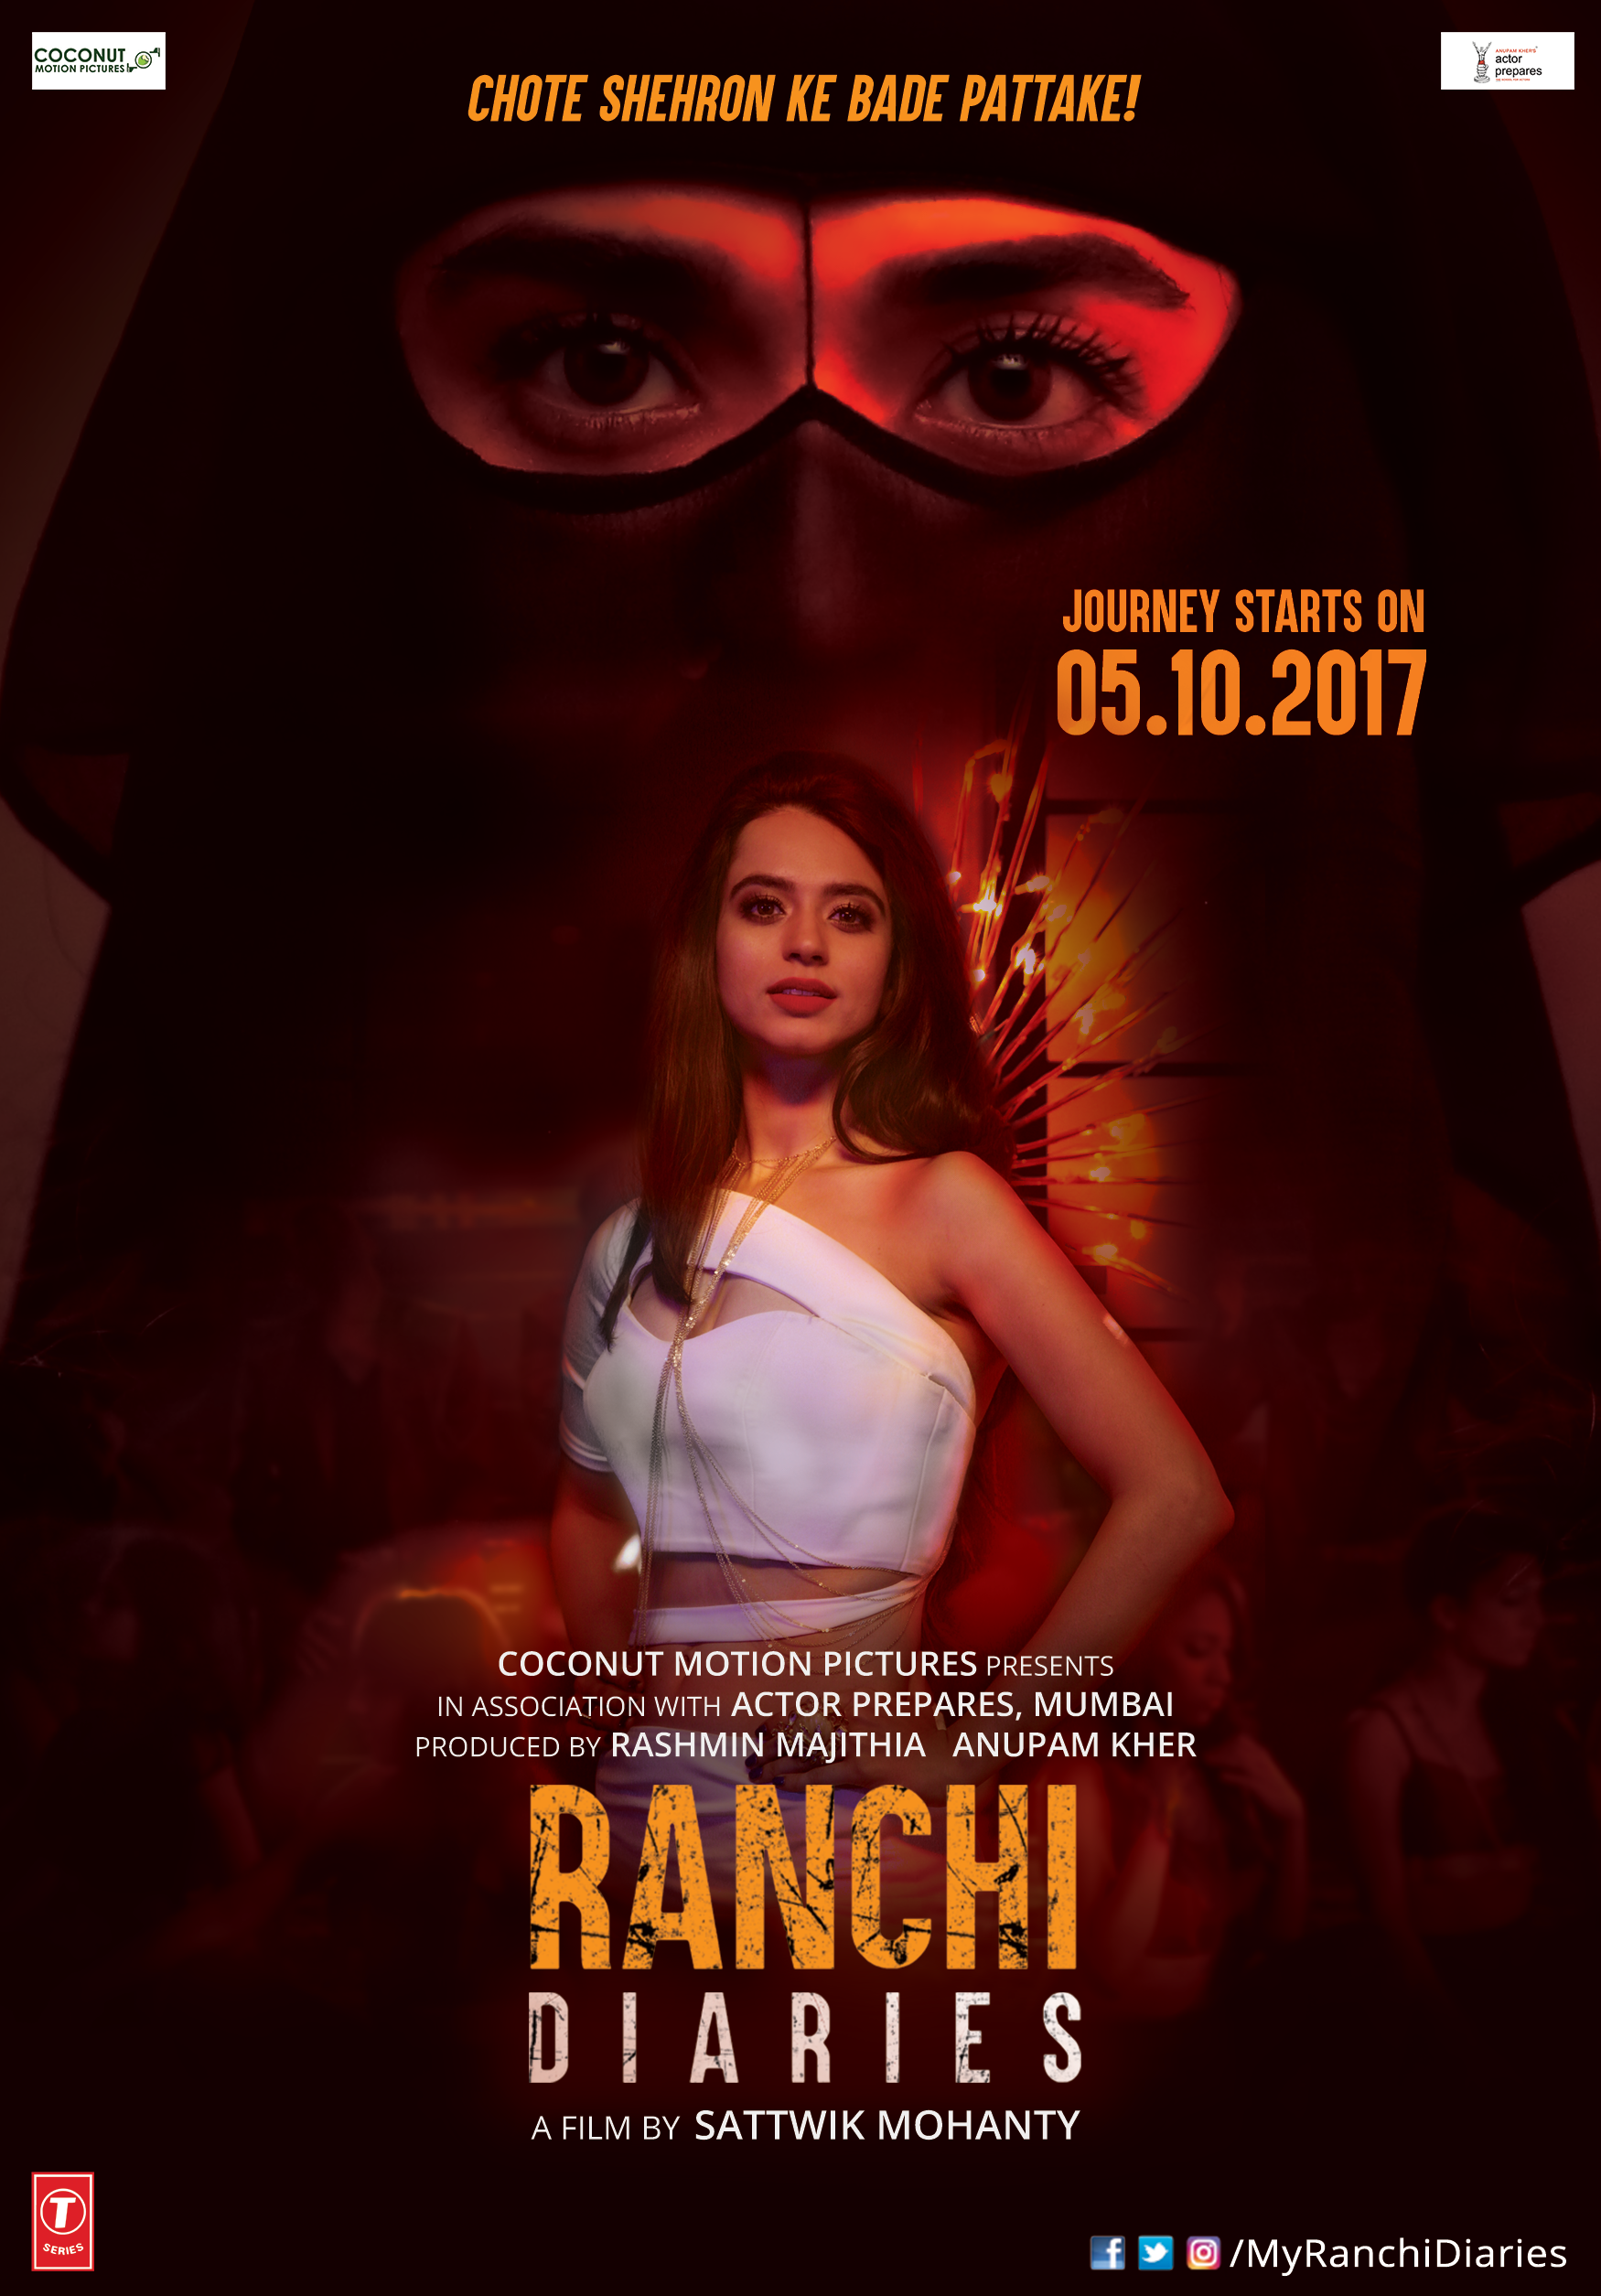 Ranchi Diaries - Poster 2